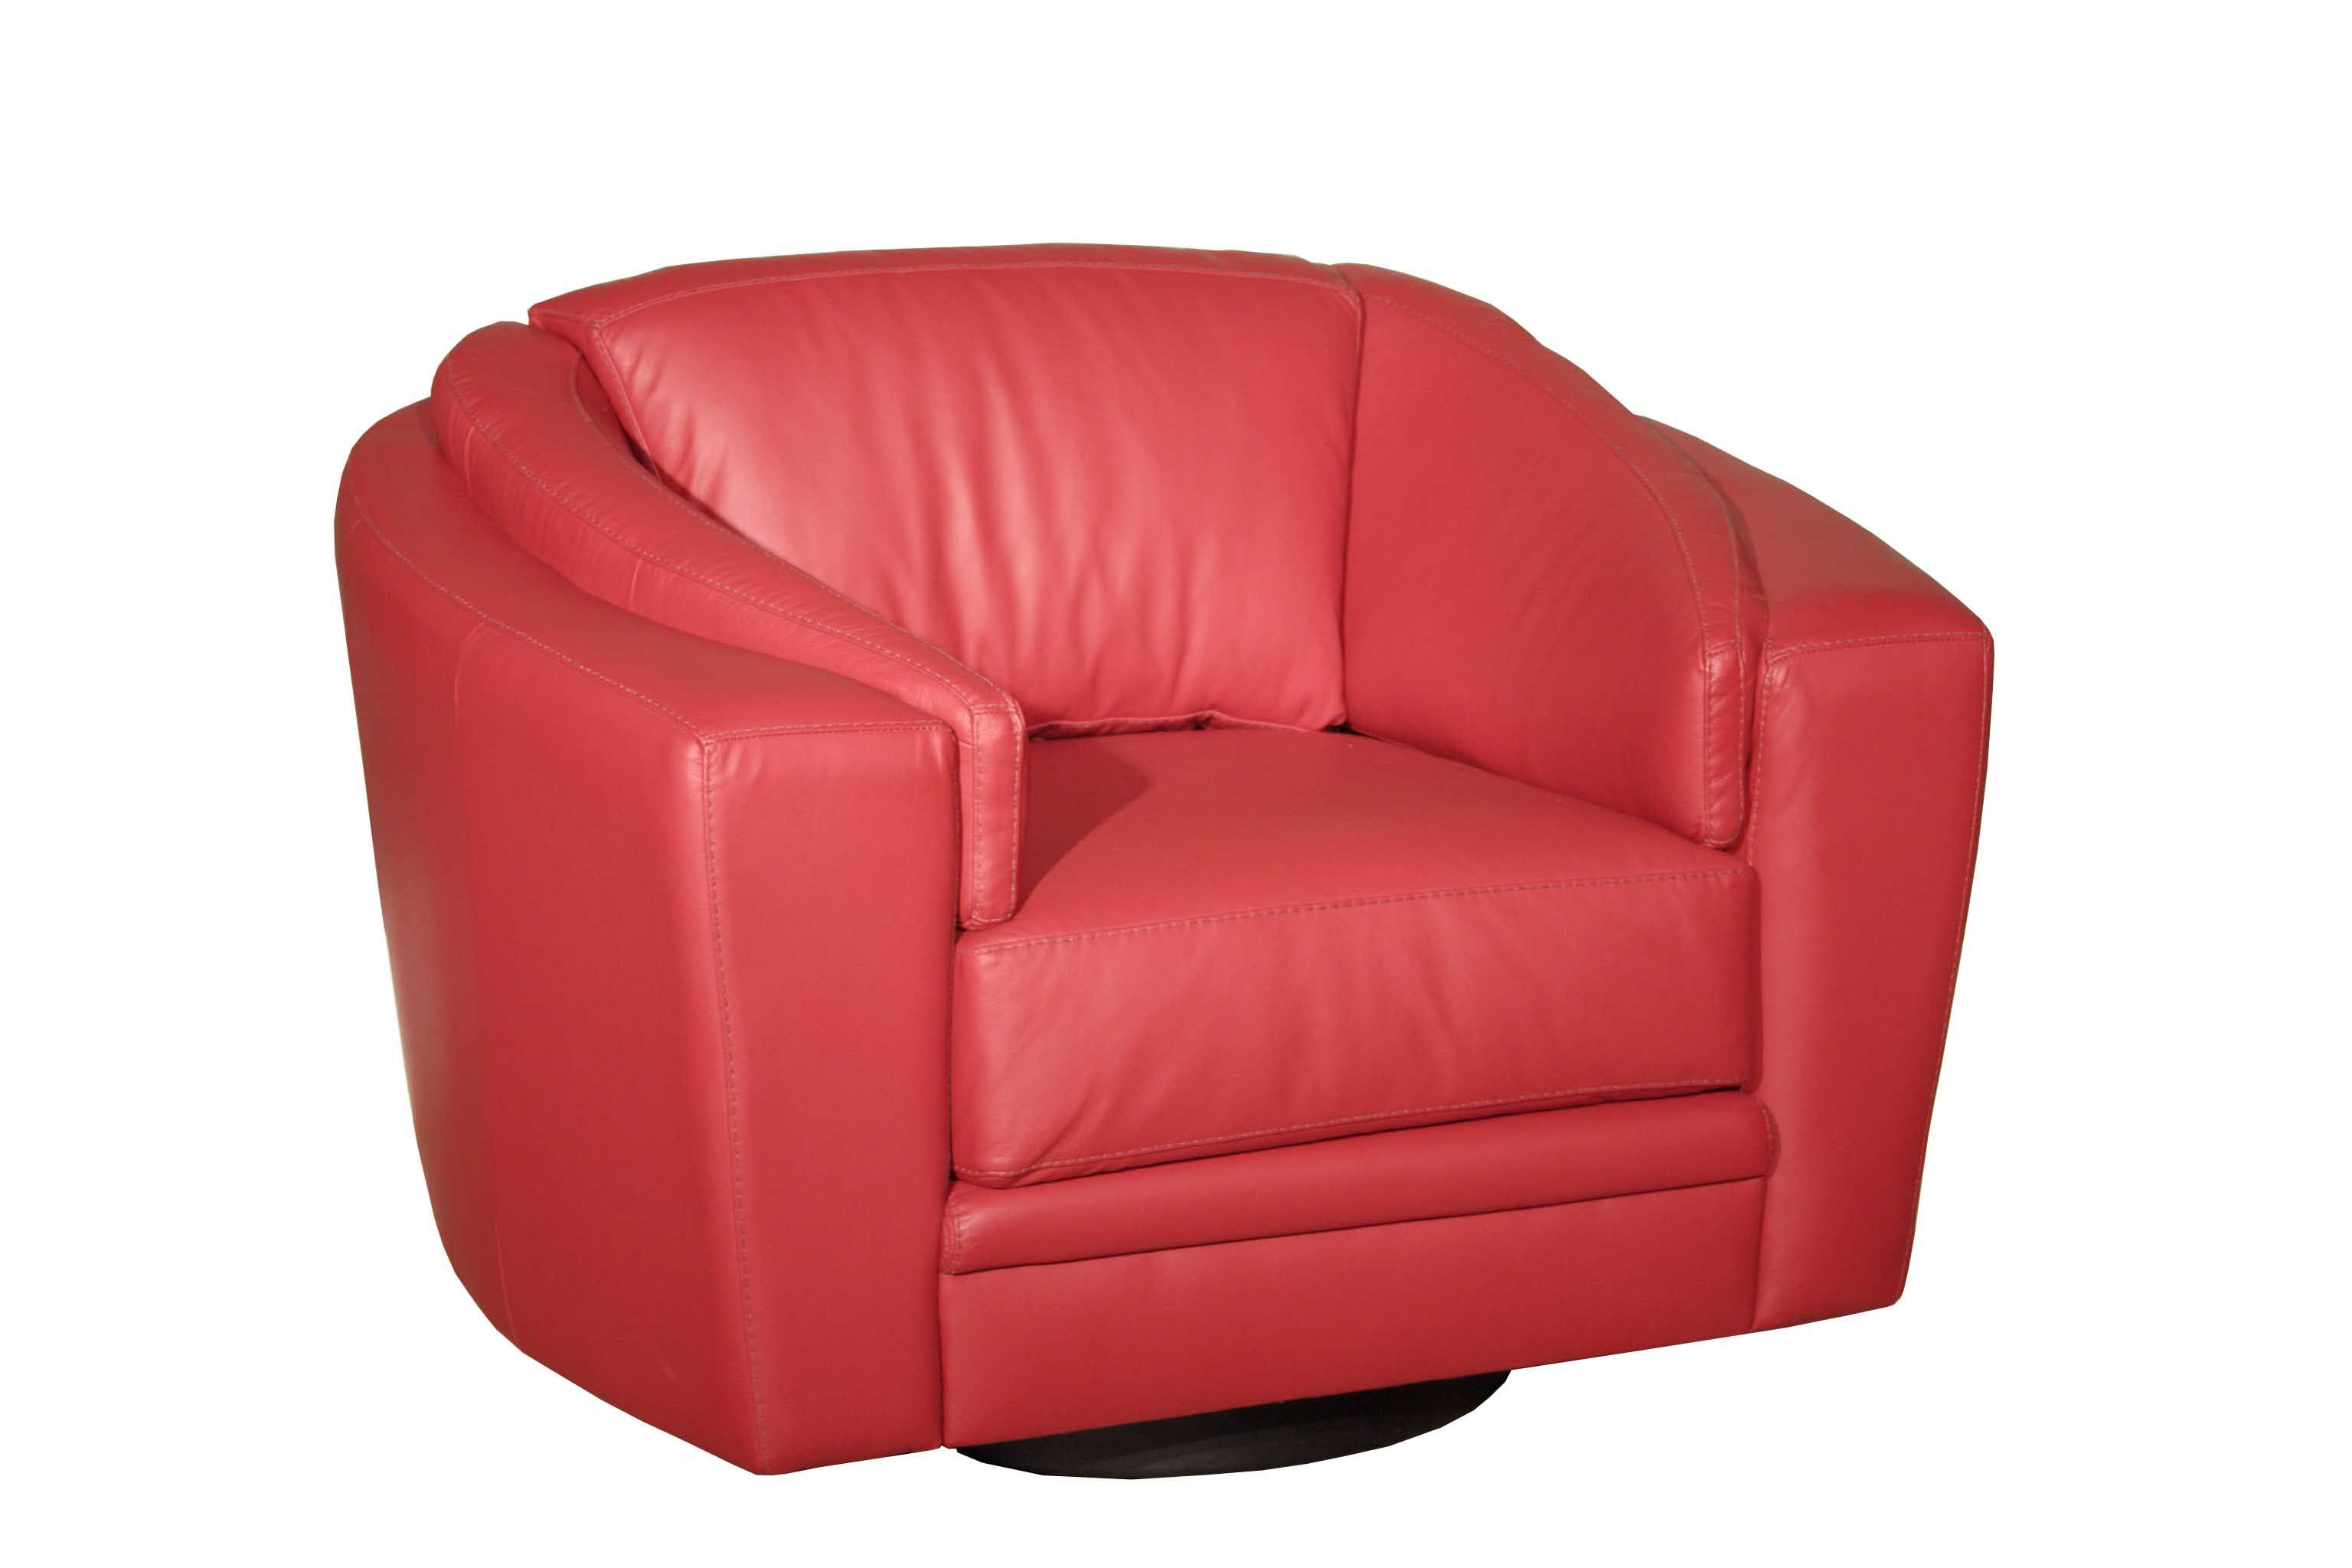 Fiona swivel chair from red leather furniture loveseat